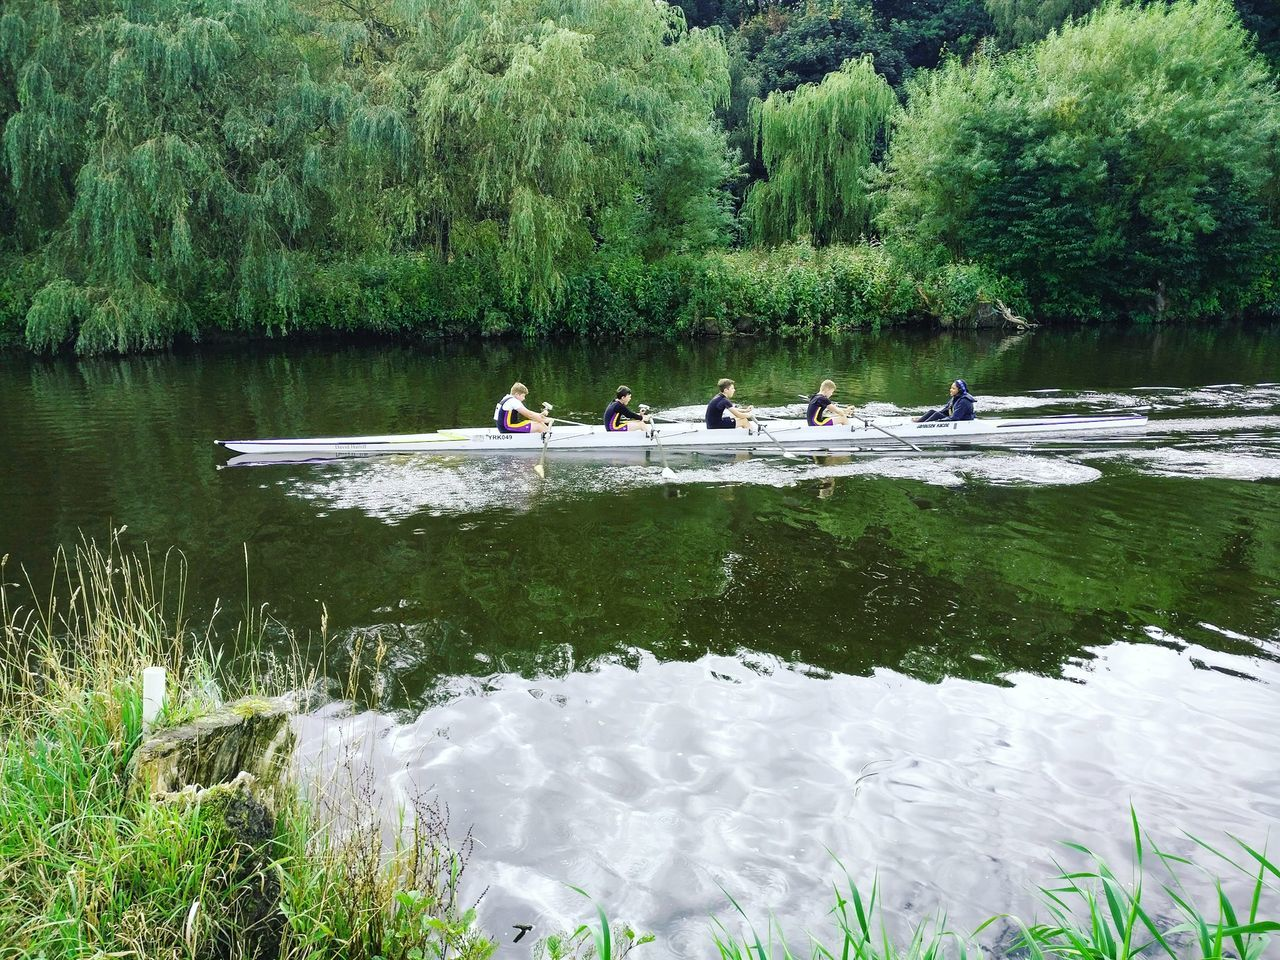 Water Nature Rowing Regatta River Live For The Story The Great Outdoors - 2017 EyeEm Awards